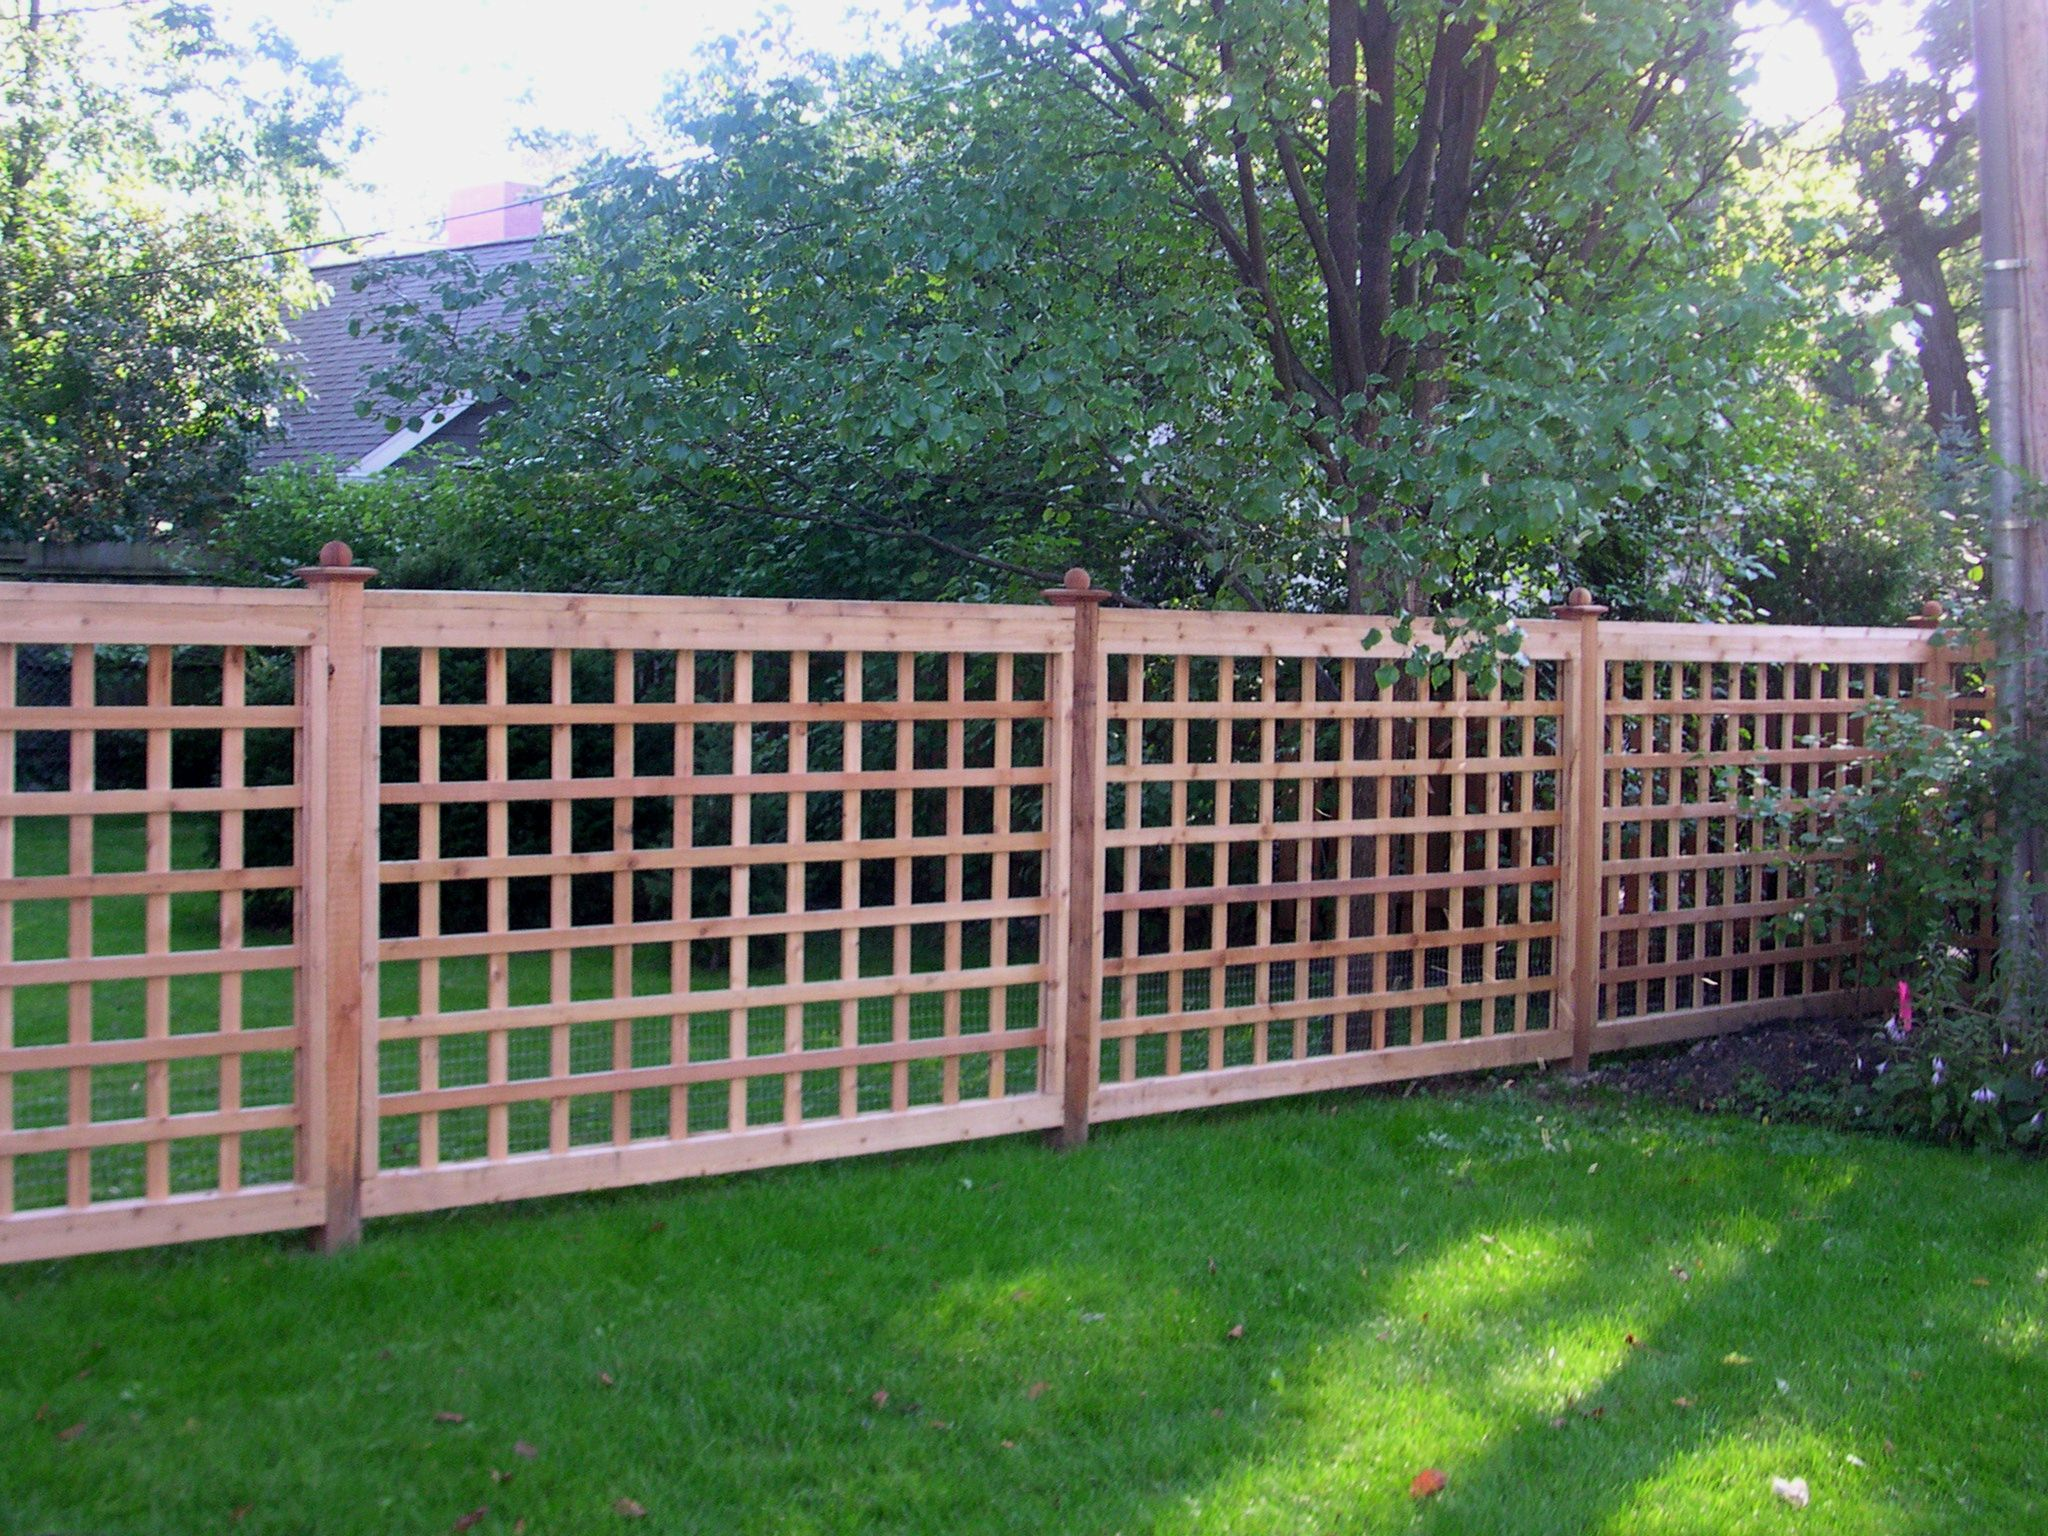 Ideas For Garden Fences Style Metal And Wood Fence Designs  Garden Fence Design Ideas Metal .